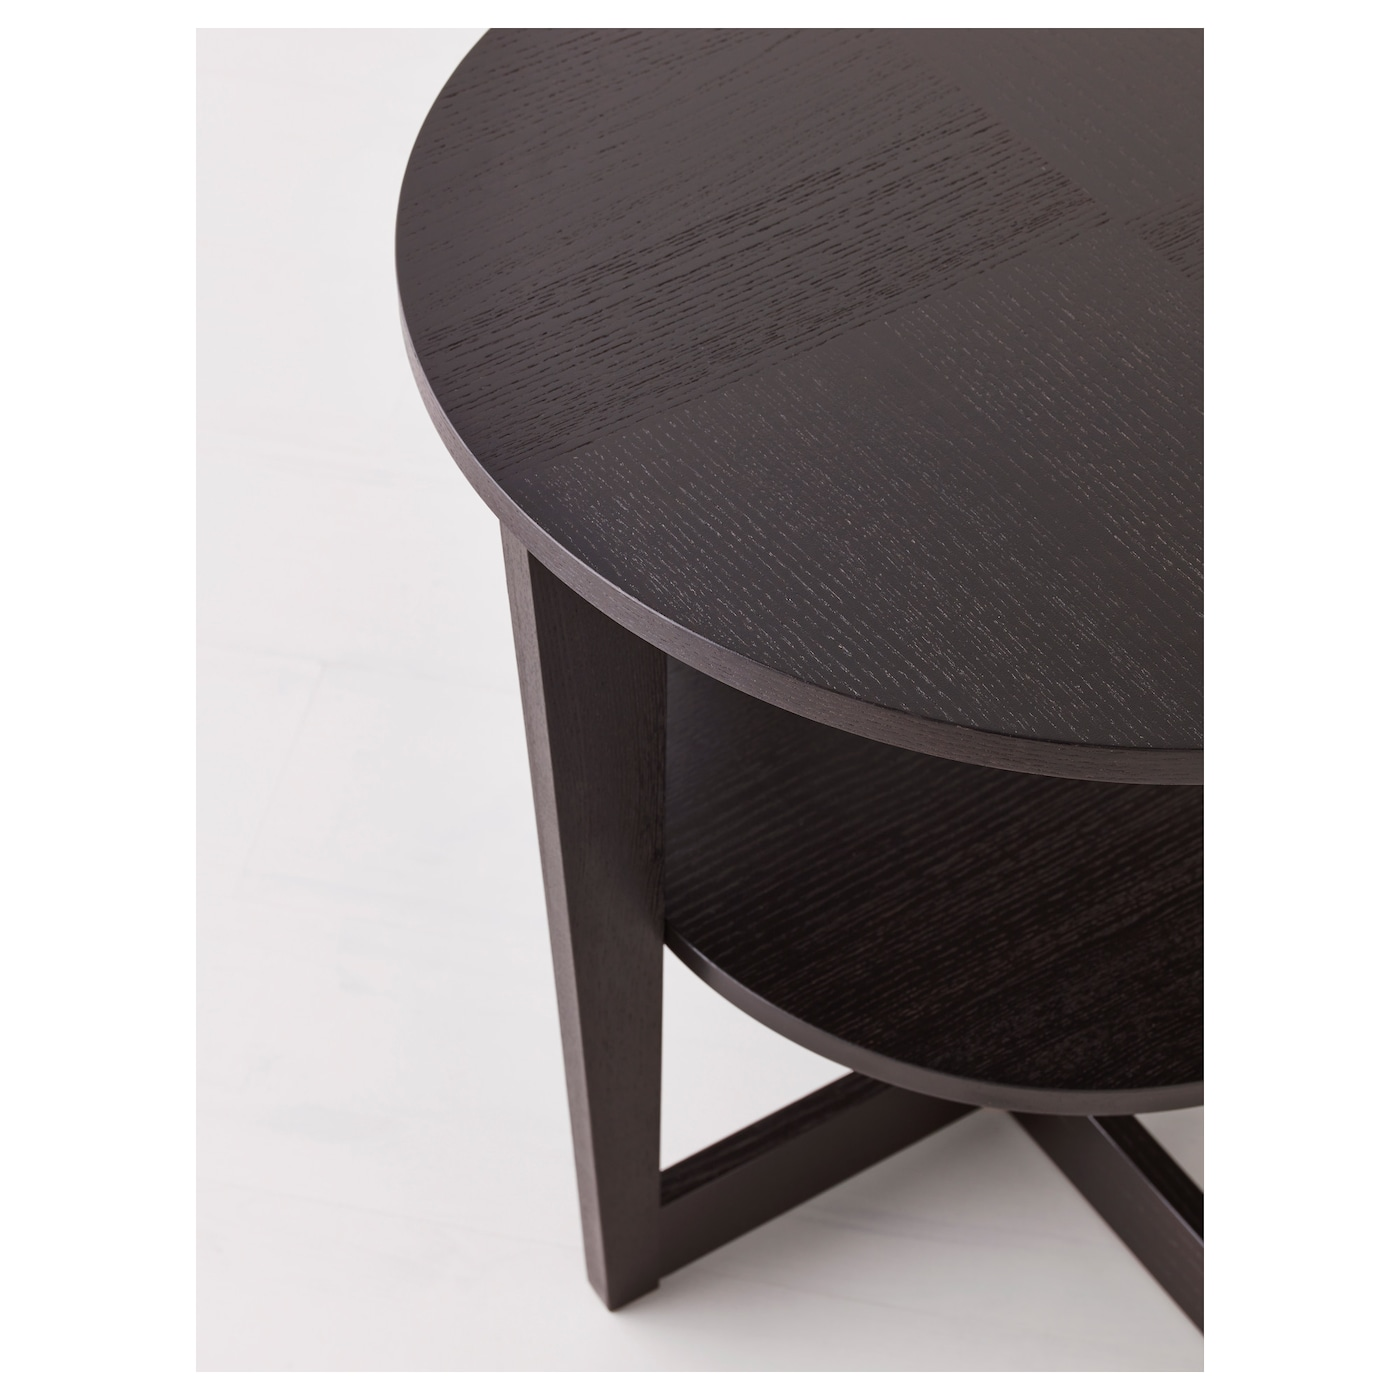 vejmon table d 39 appoint brun noir 60 cm ikea. Black Bedroom Furniture Sets. Home Design Ideas